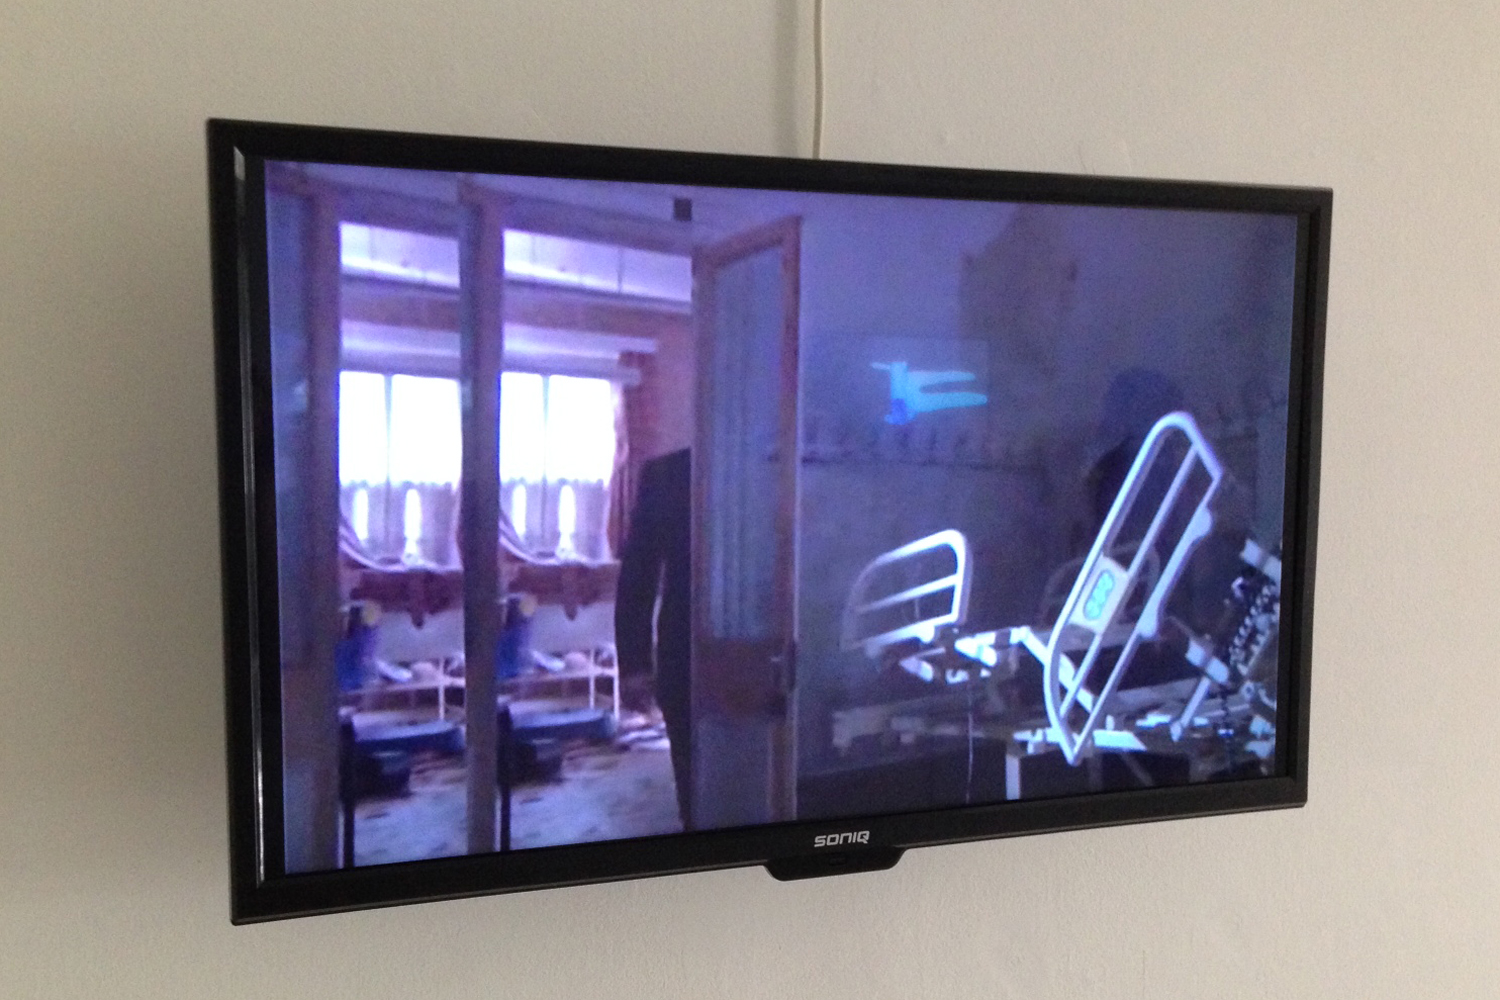 Genevieve Pikó Screened By the Room, 2014, HD video, 0:44 minutes, looped.